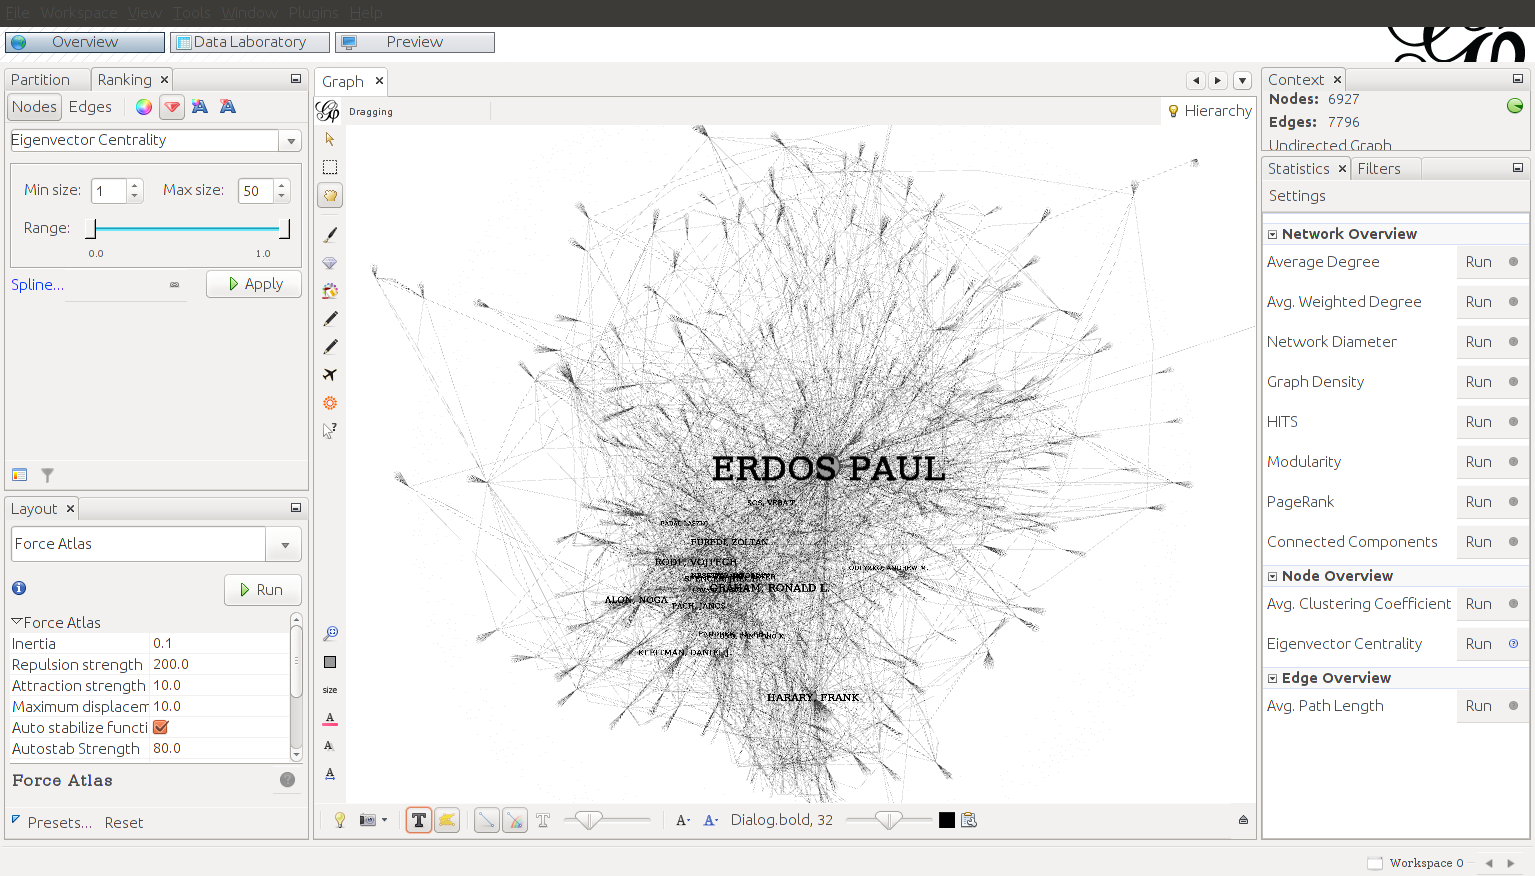 Gephi 0.8.2 - Project 0_010